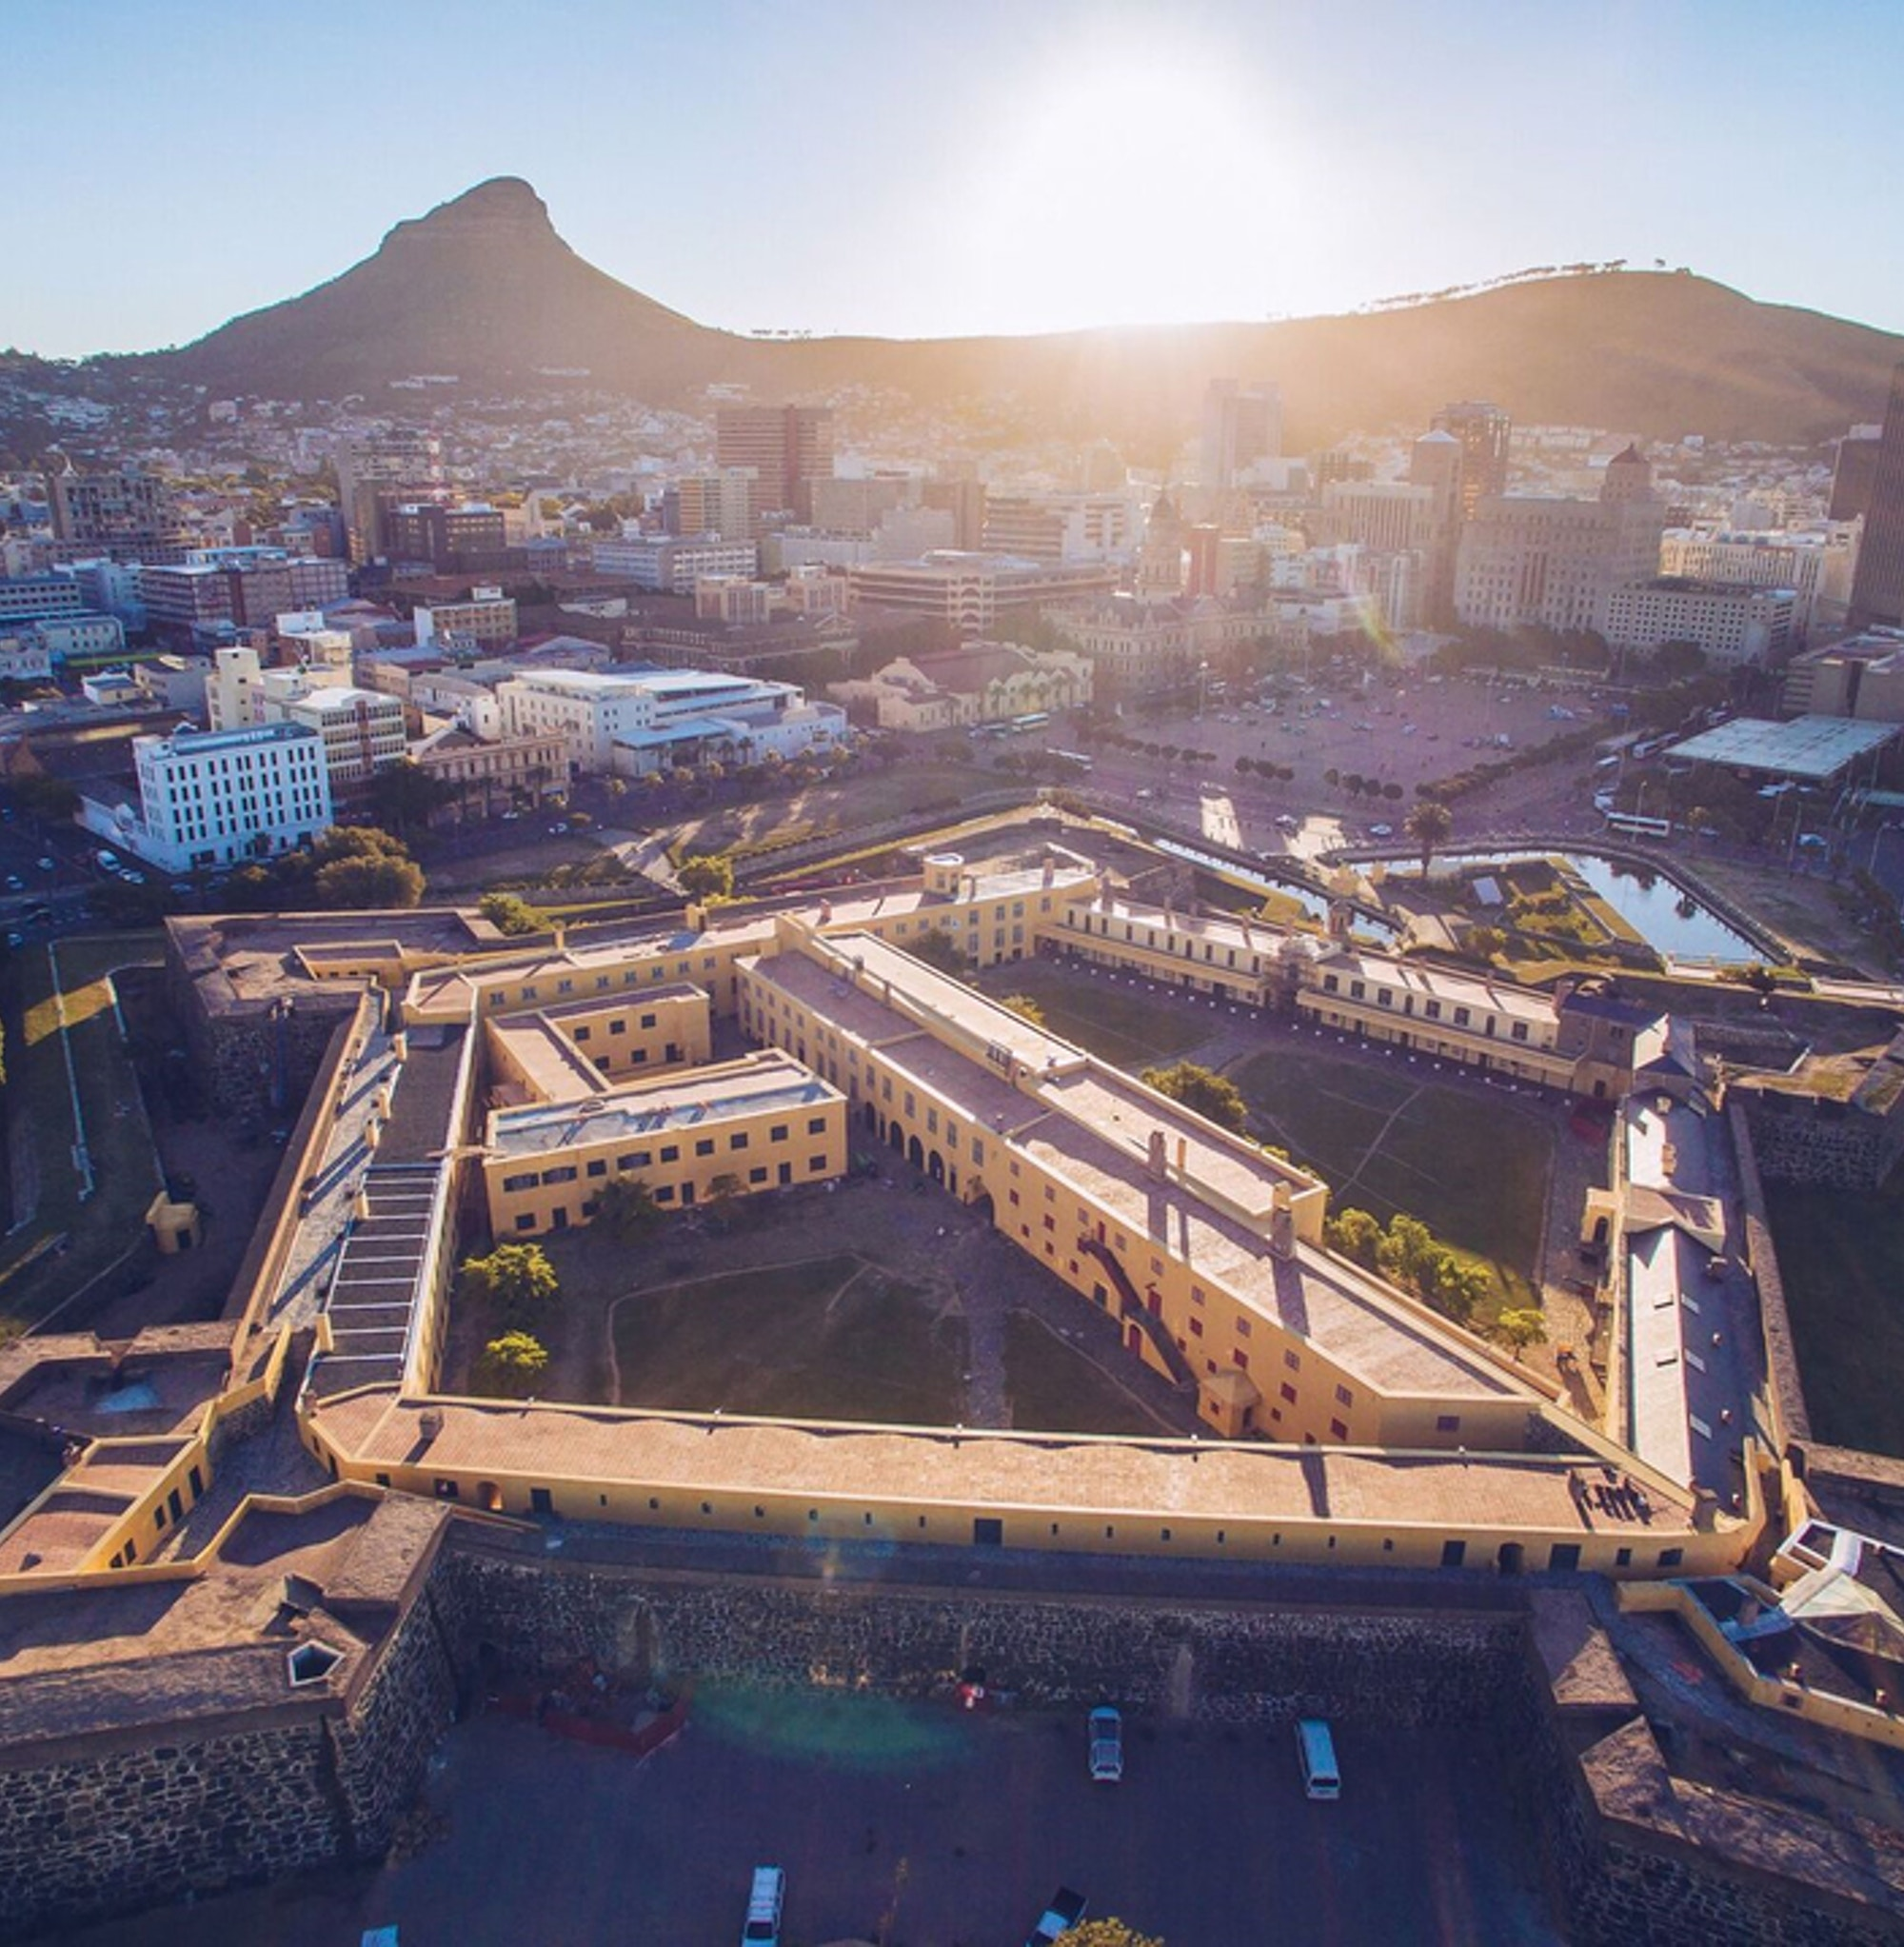 Aerial view of the Castle of Good Hope